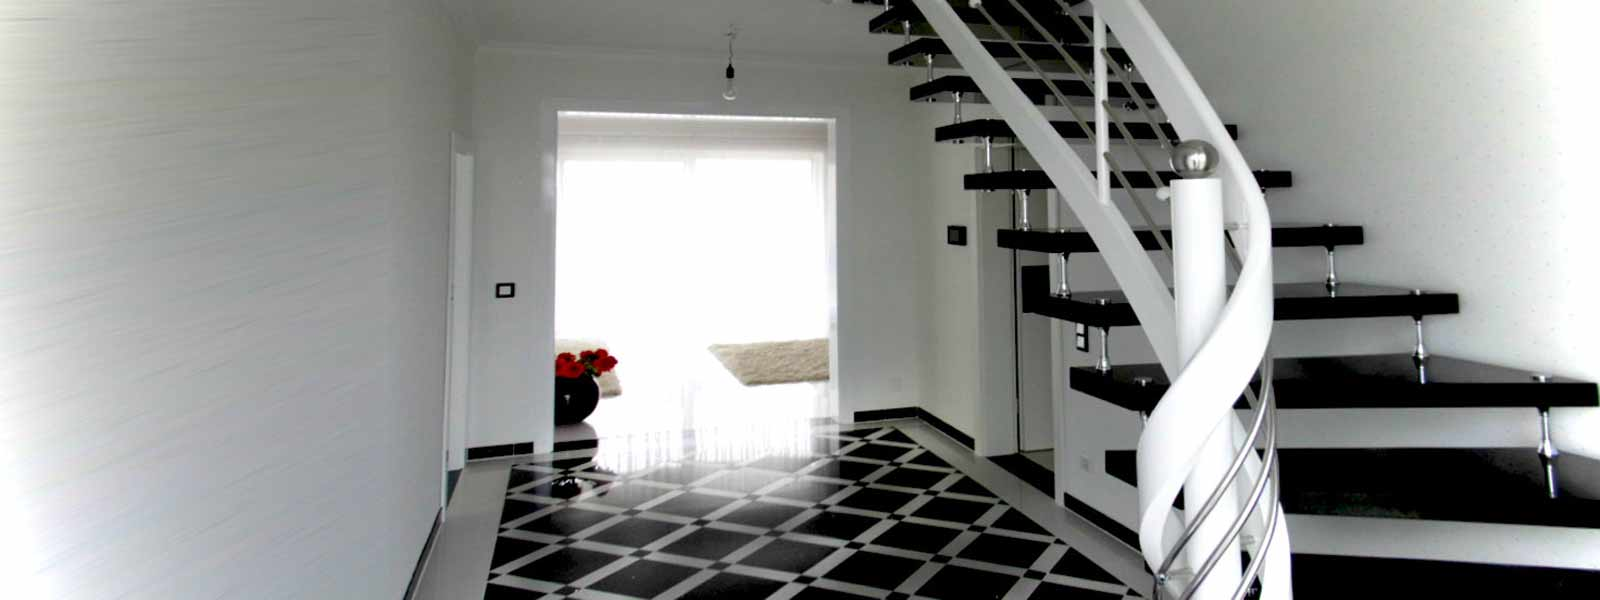 bolzentreppen freitragende treppe. Black Bedroom Furniture Sets. Home Design Ideas